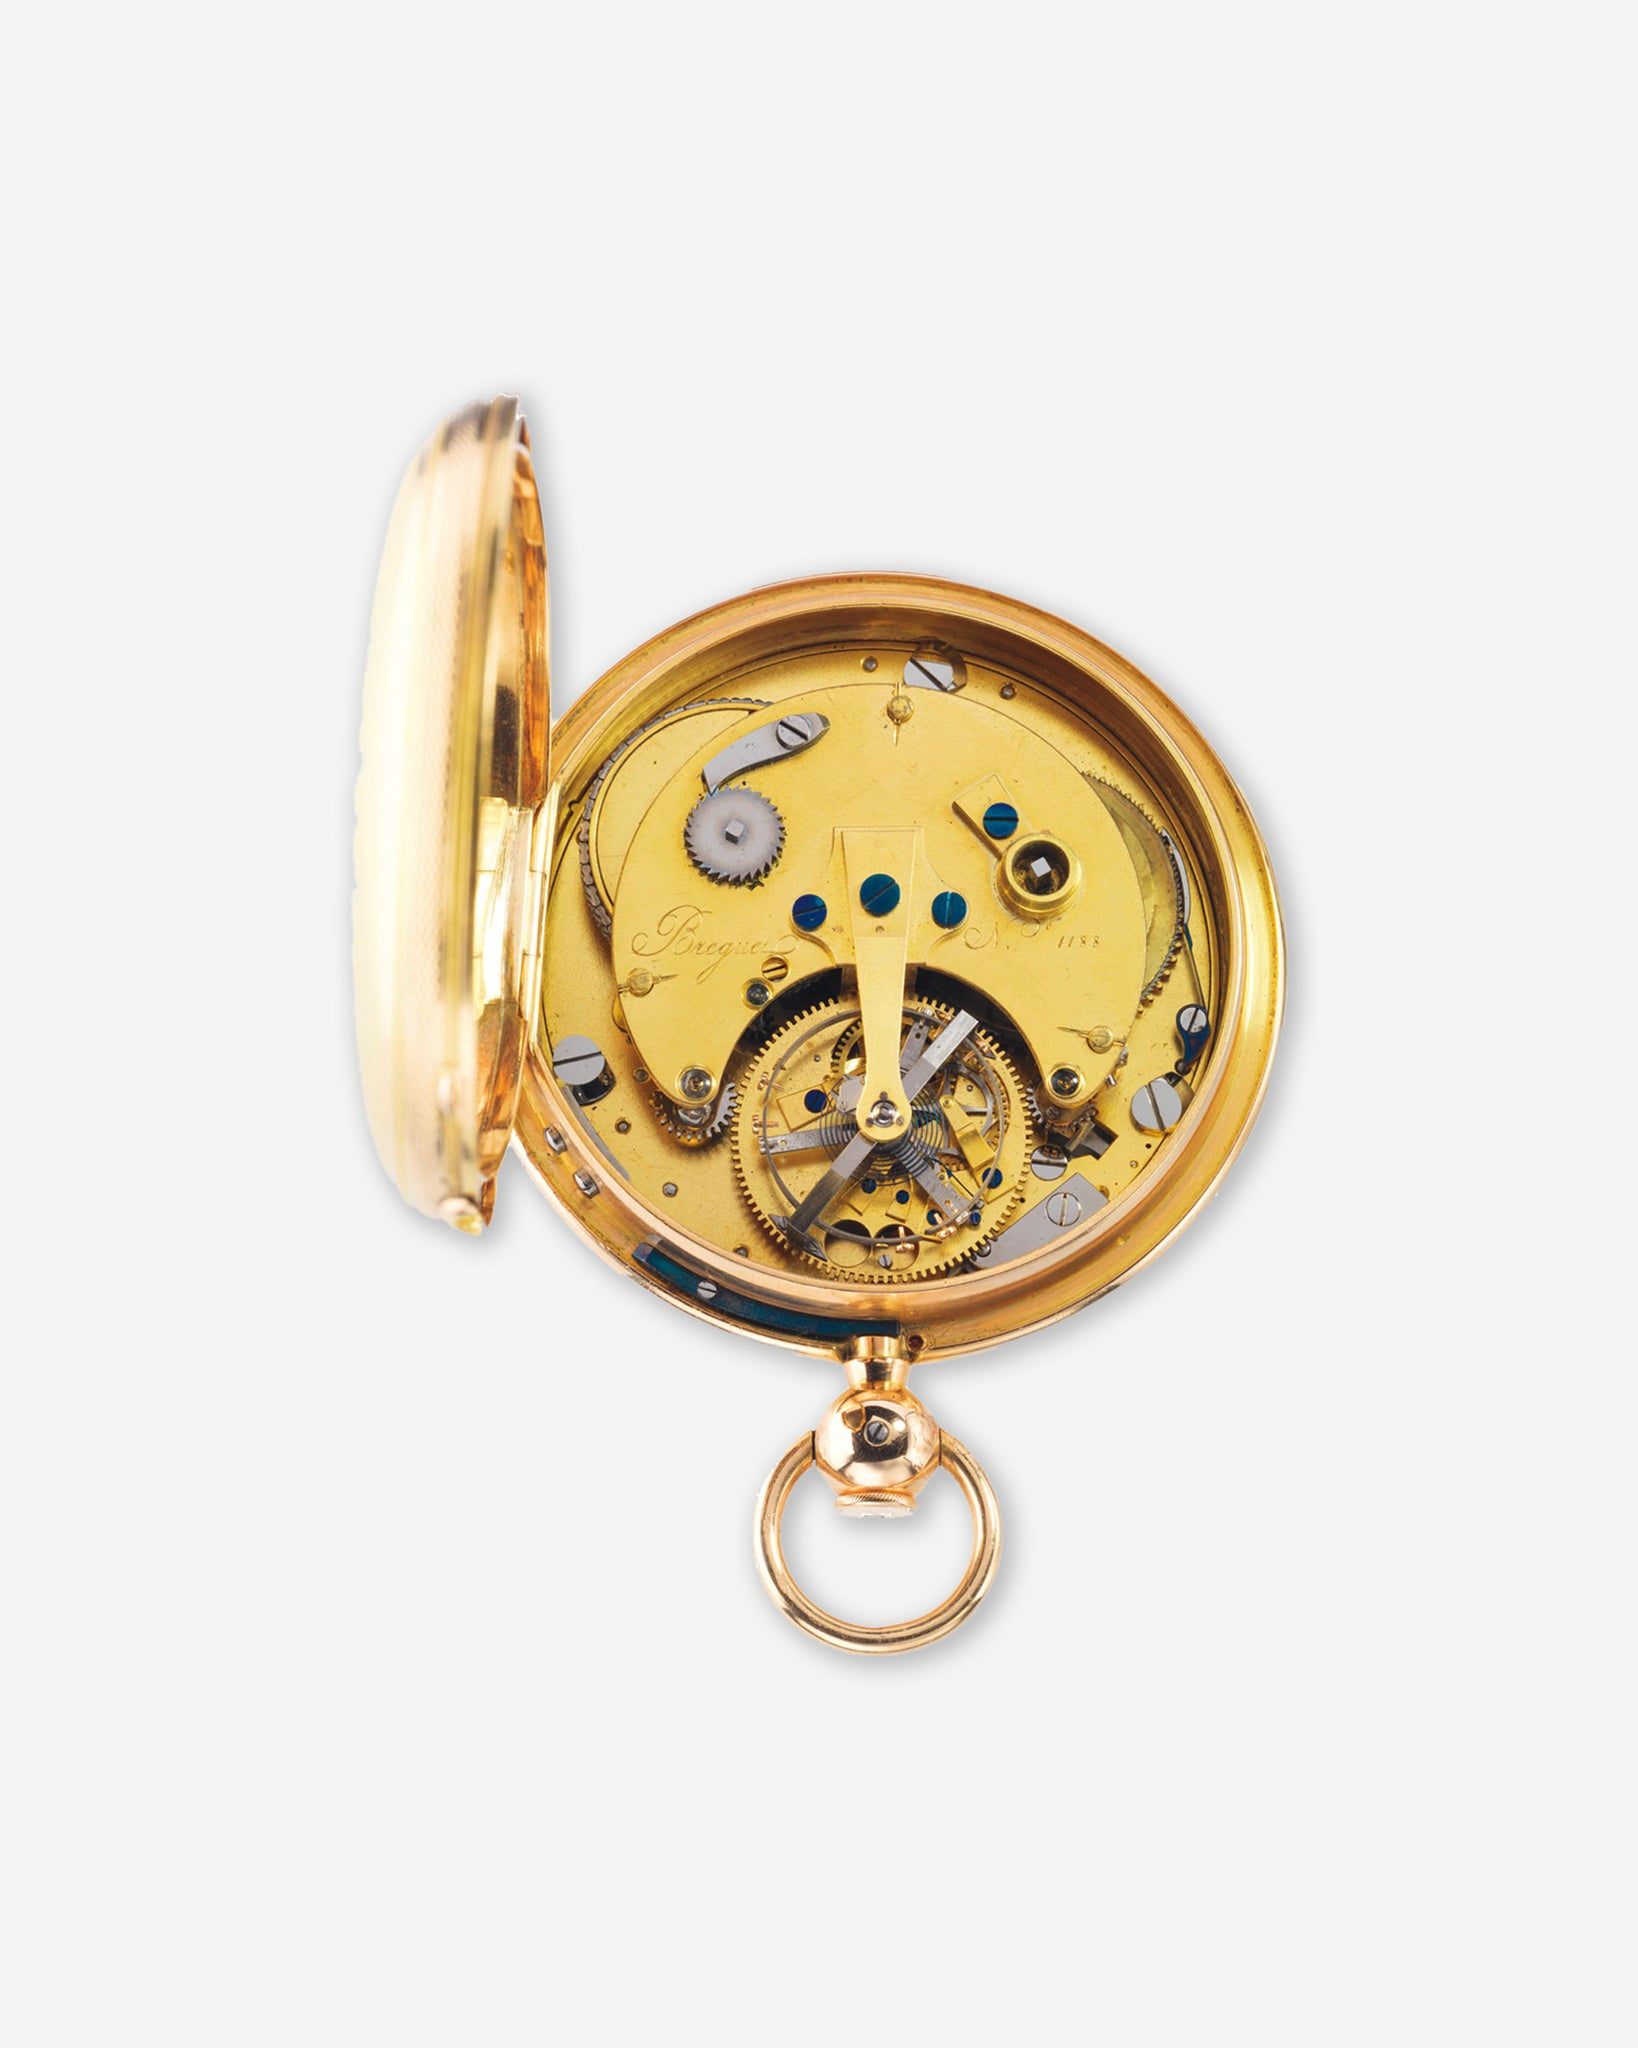 Abraham-Louis Breguet's No. 1188 tourbillon pocket watch